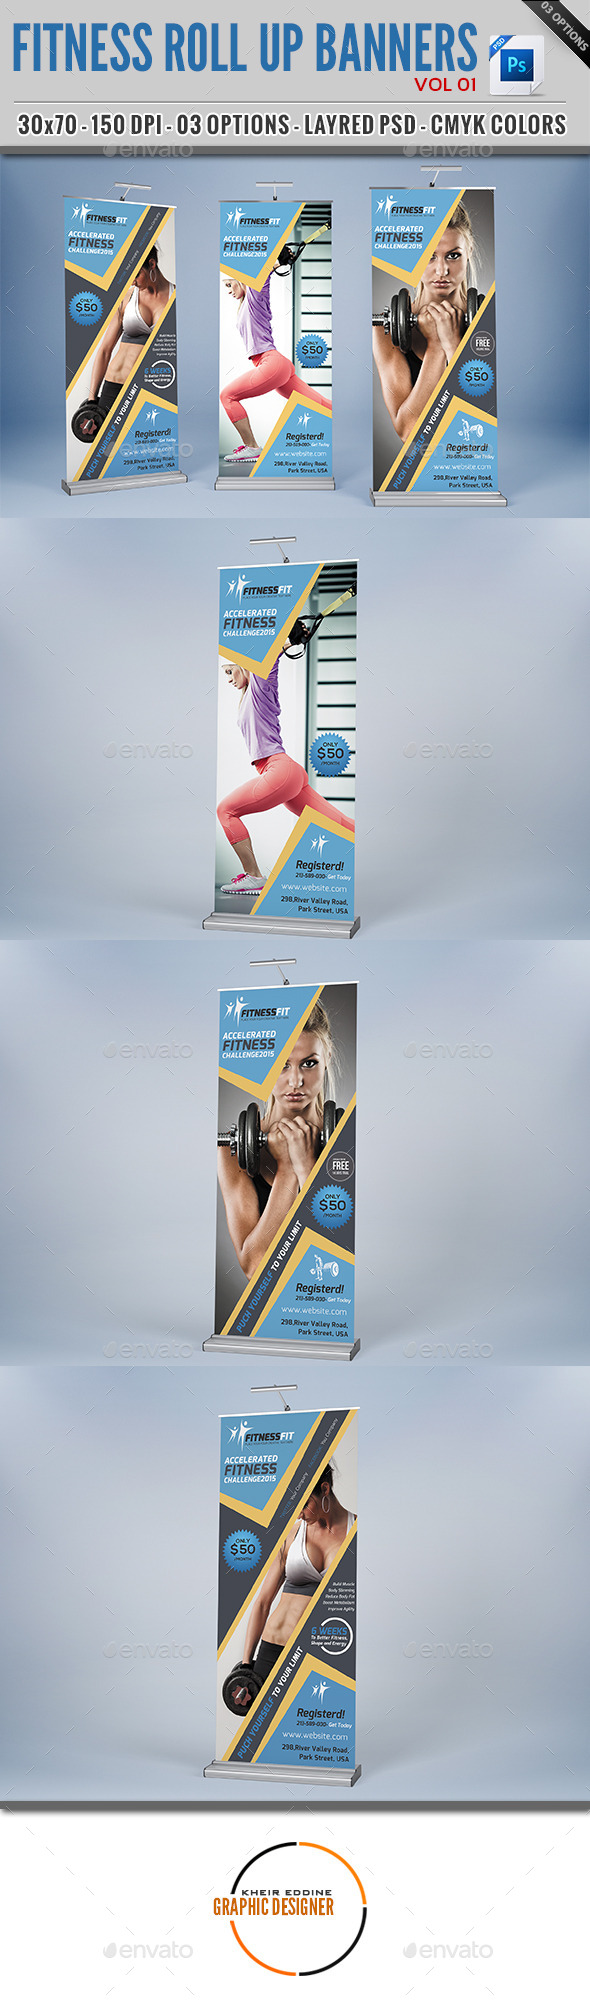 GraphicRiver Fitness Roll Up Banner Vol 01 11959804